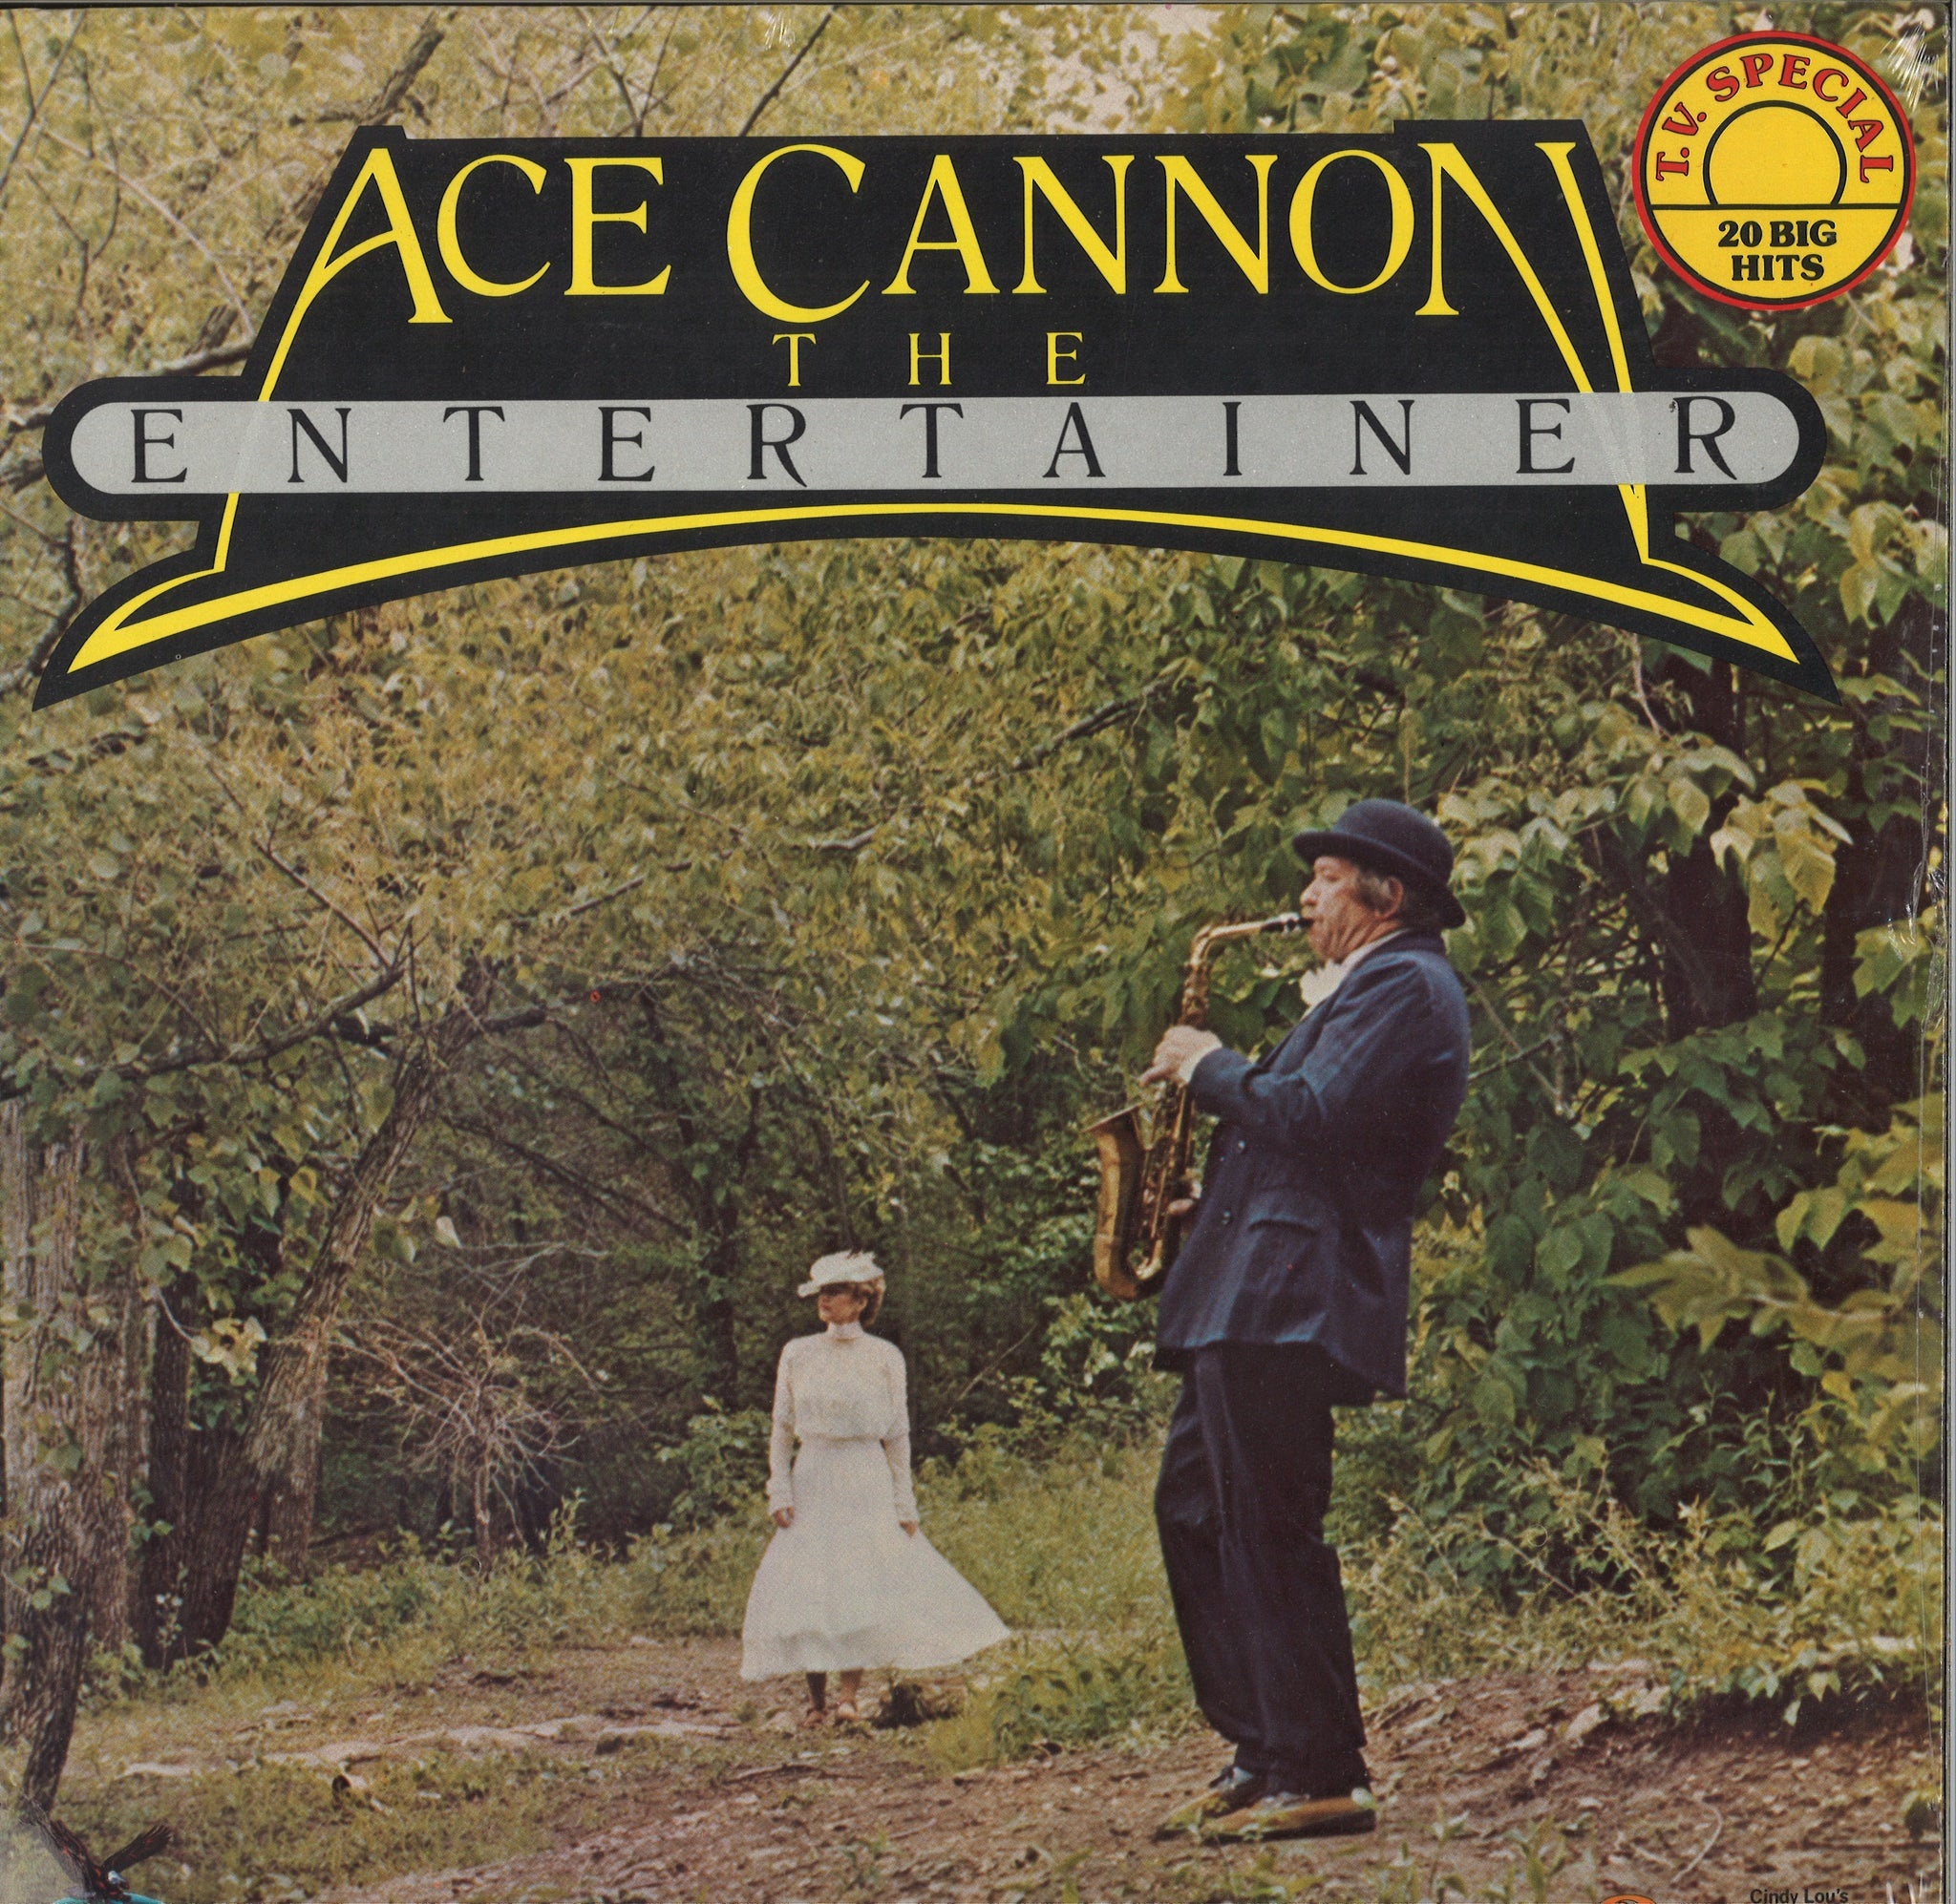 Ace Cannon The Entertainer